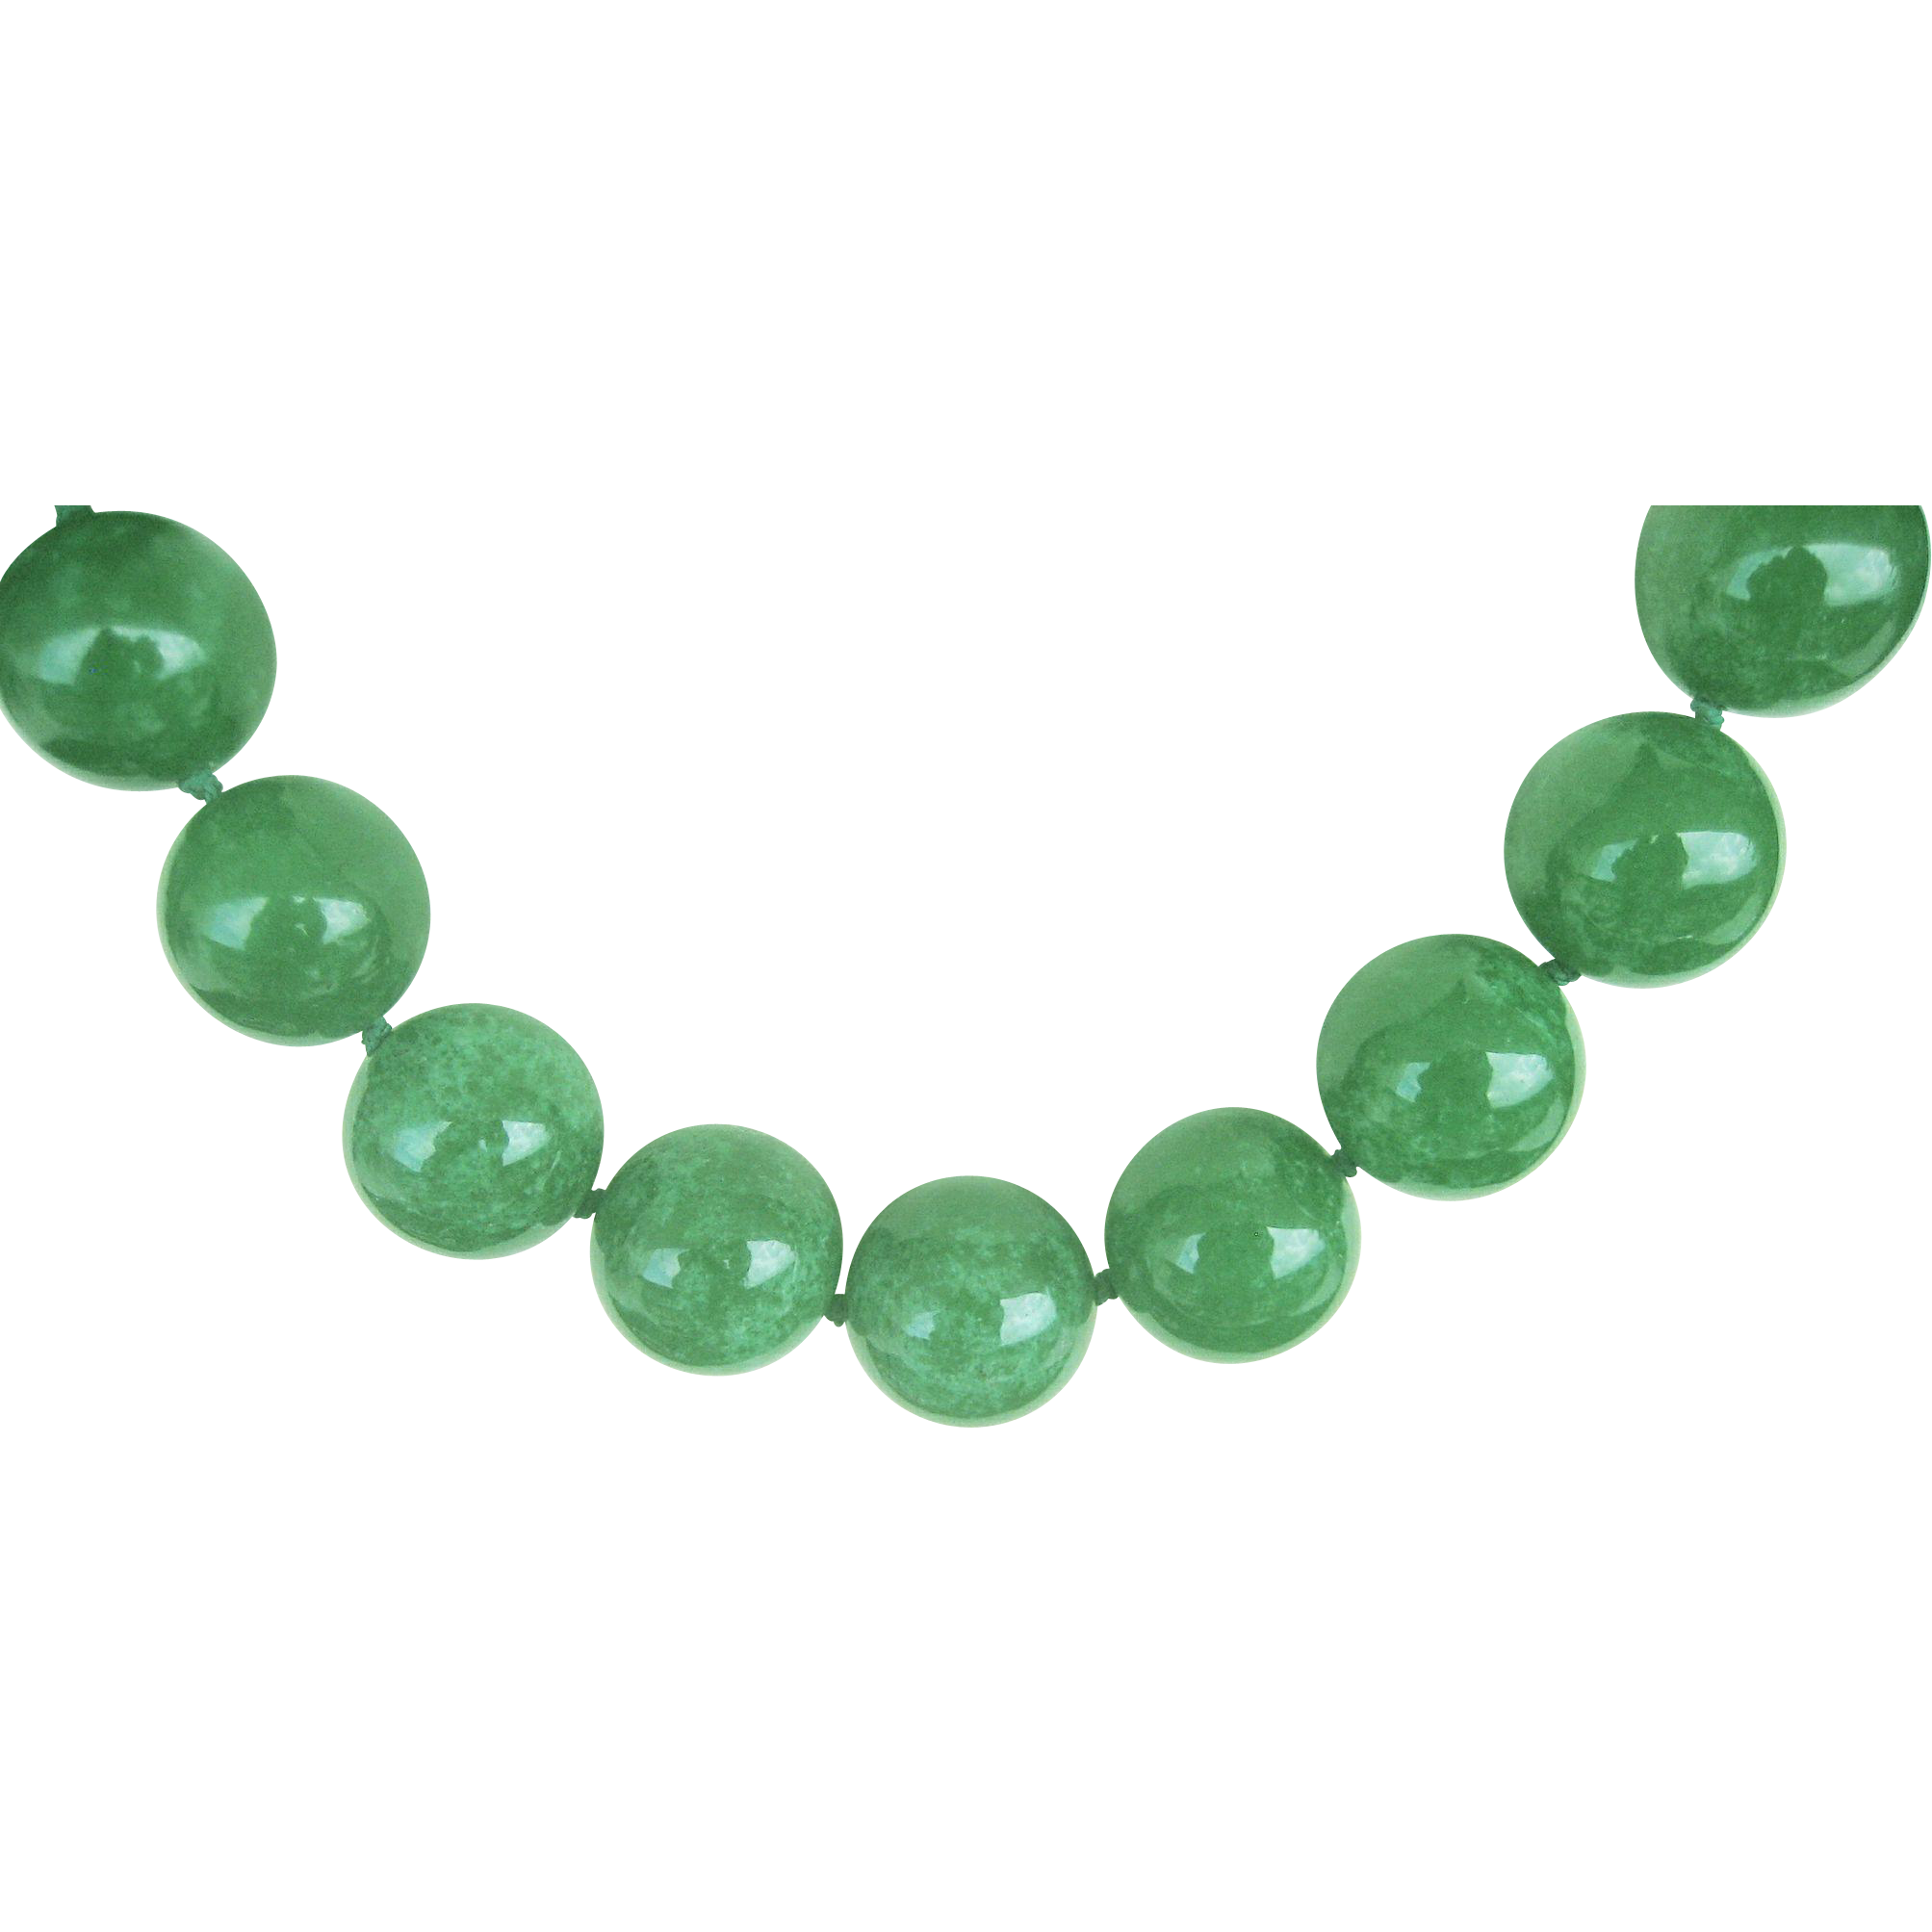 privatecollection jade picturebook chinese necklace index devils s work